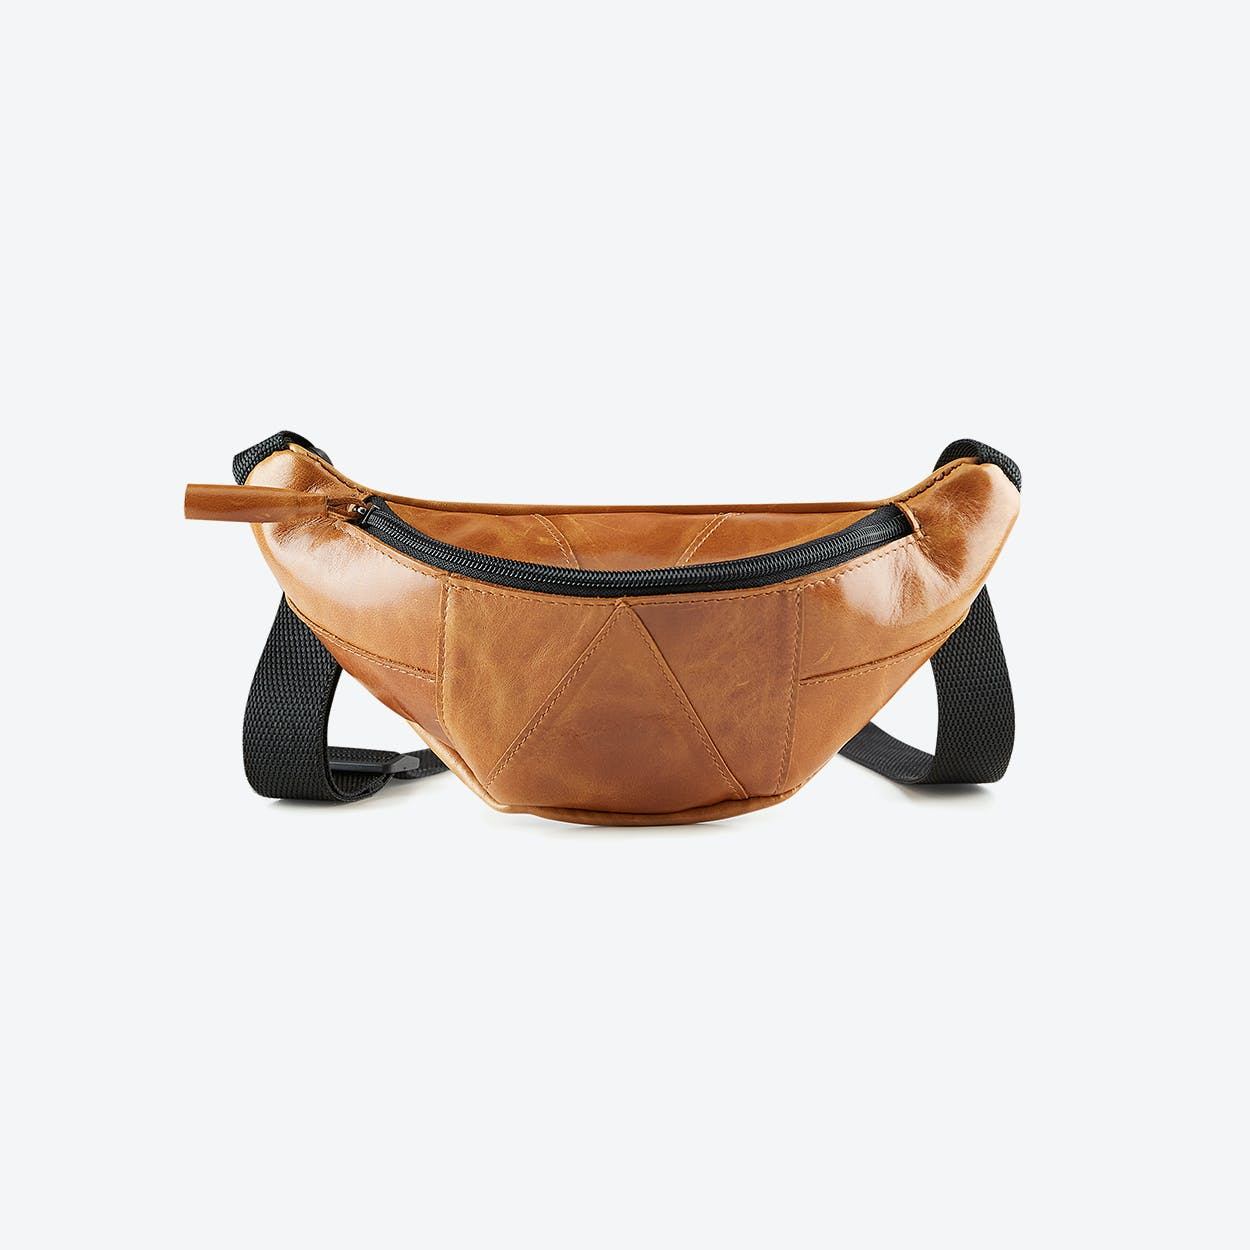 Banana Belt Bag in Brown Leather